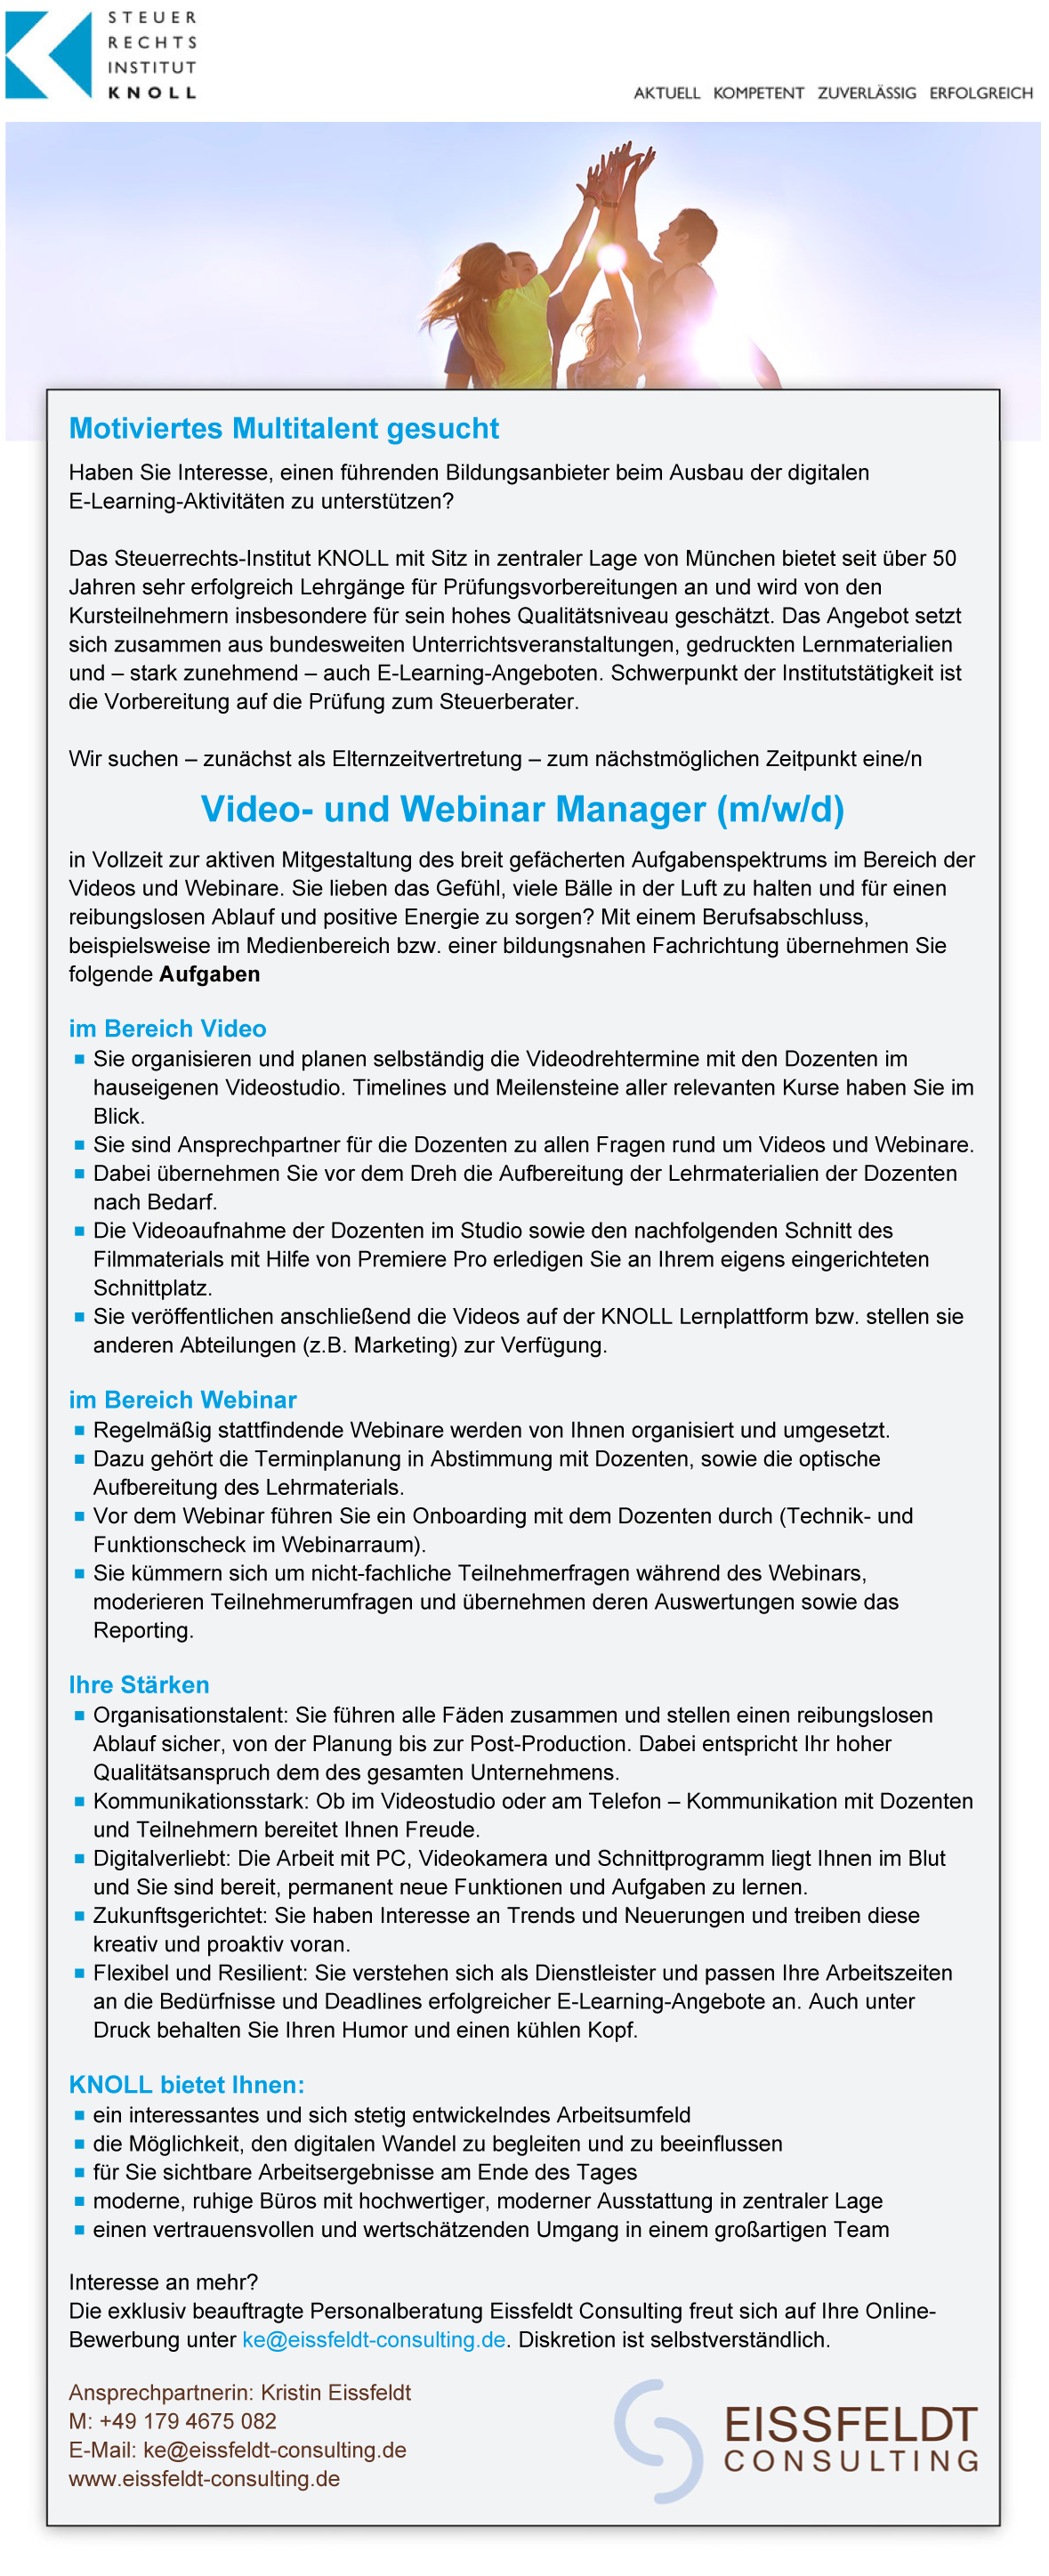 Video- und Webinar Manager (m/w/d)